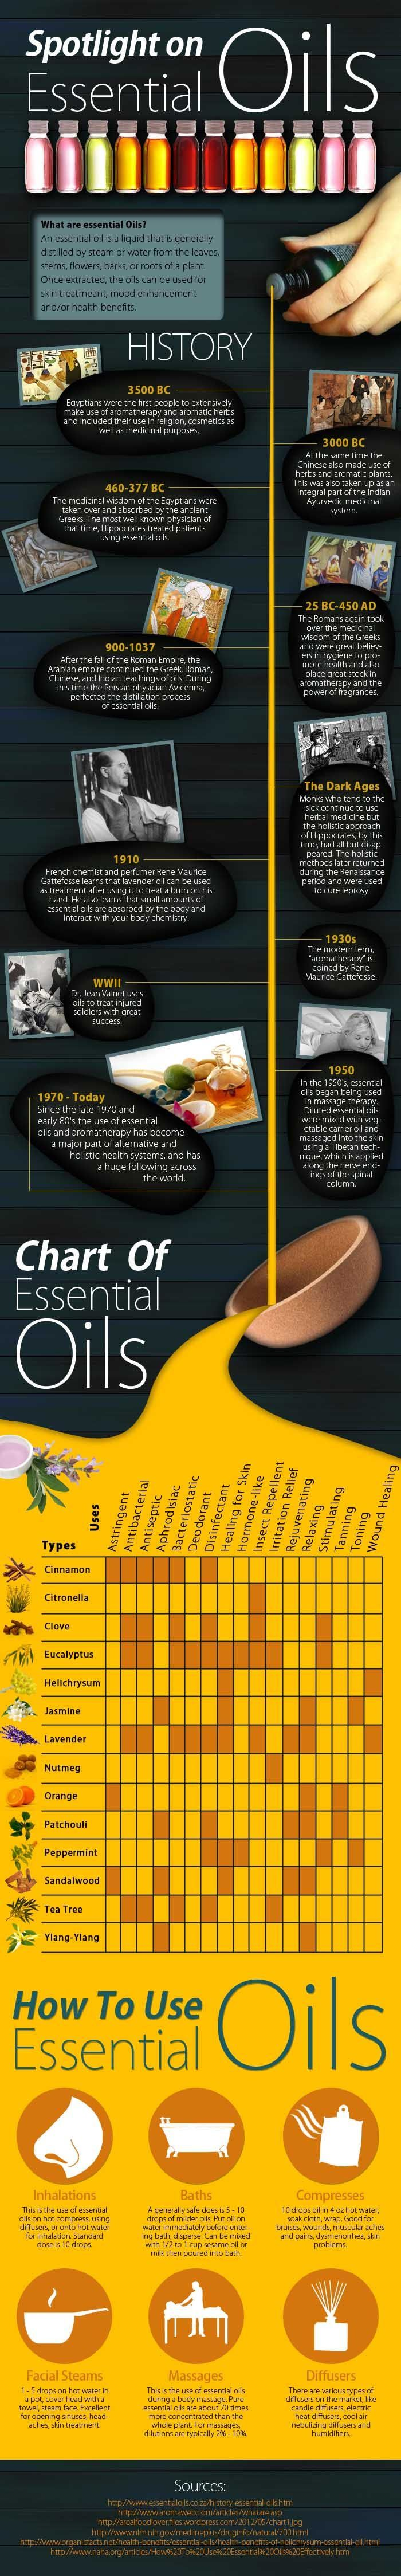 12 things you probably didn't know about essential oils...plus, a handy uses infographic! | GaiamTV